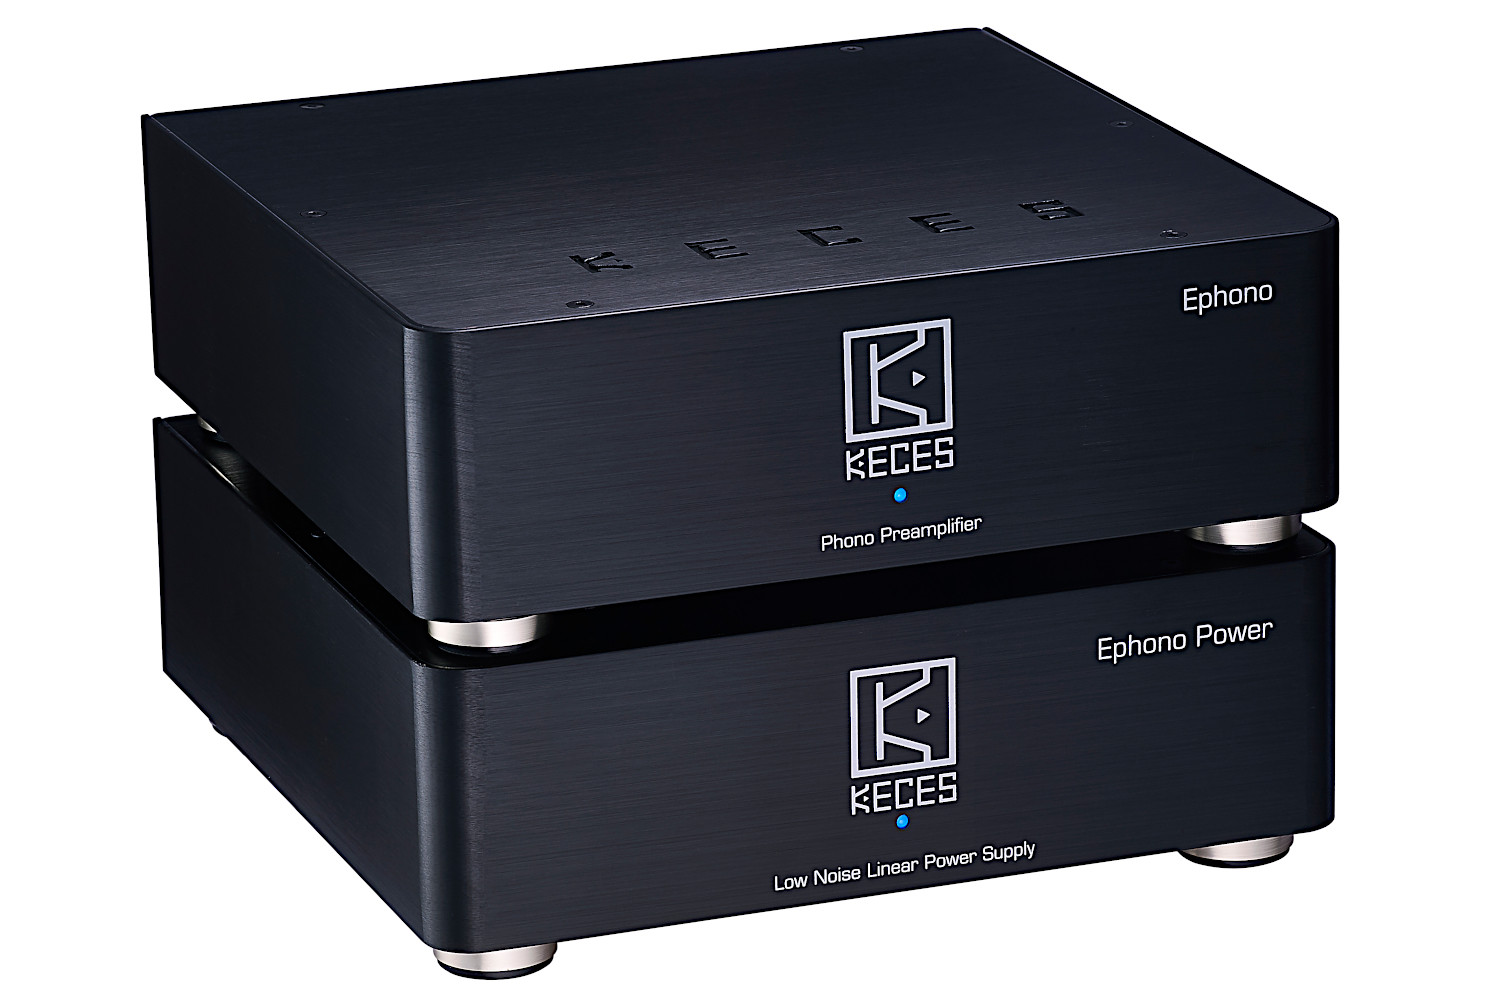 Keces Ephono & Ephono Power Supply